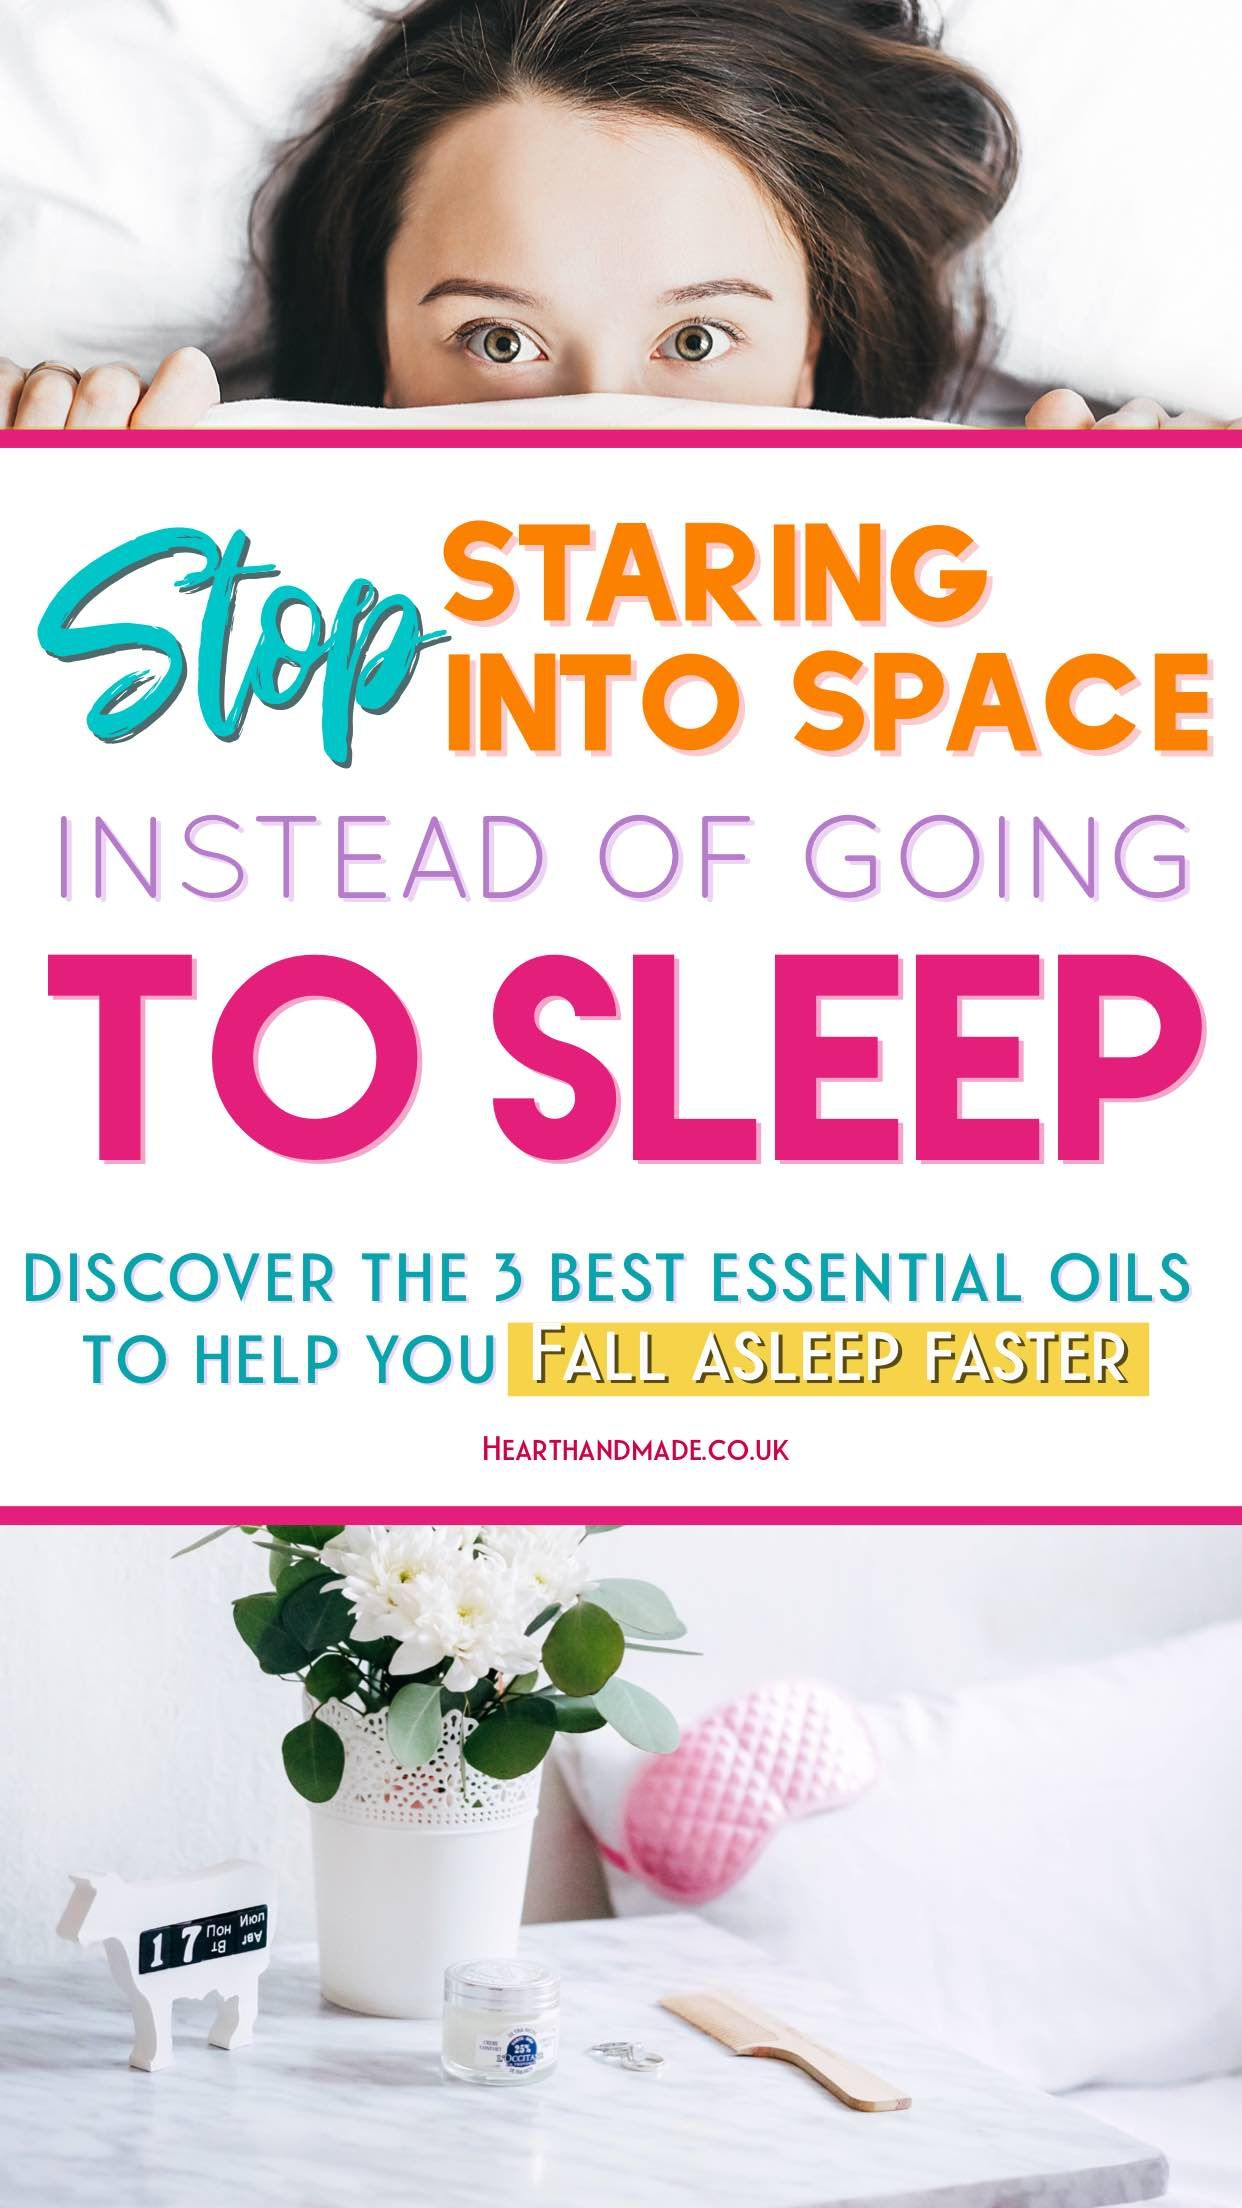 Want To Know The 3 Best Essential Oils For Sleep